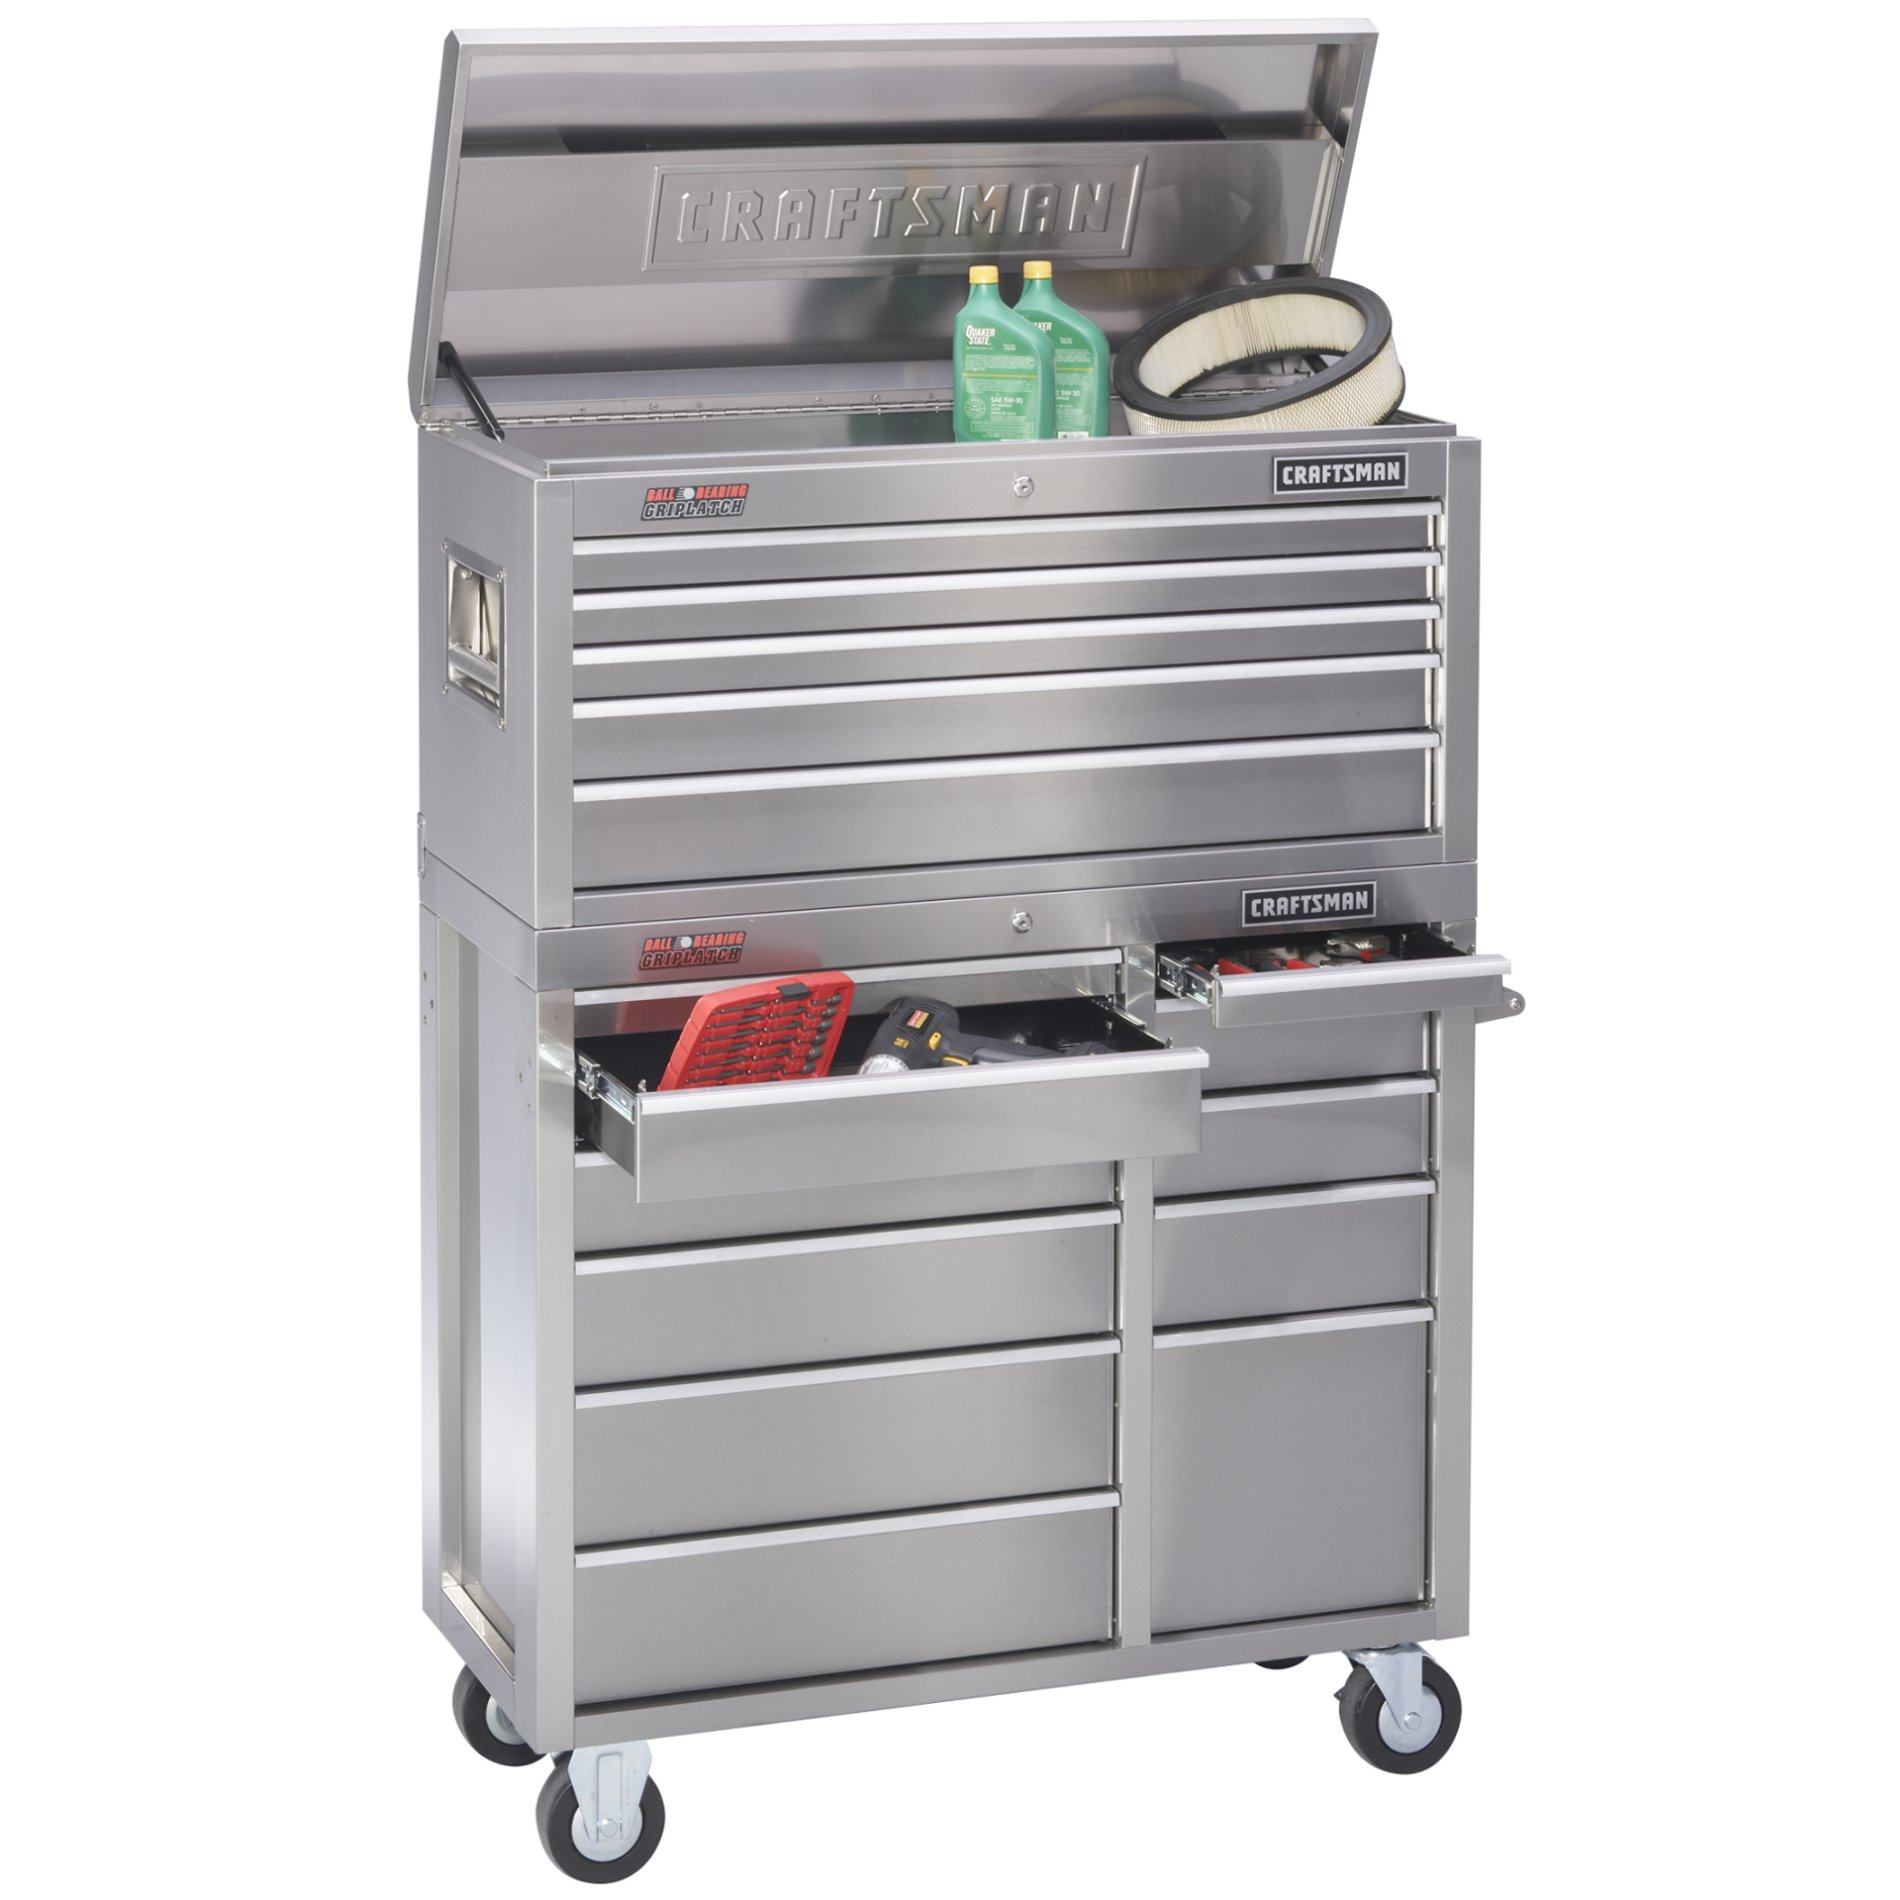 "Craftsman 41"" Wide 11-Drawer Ball-Bearing GRIPLATCH® Tool Cart - Stainless Steel"